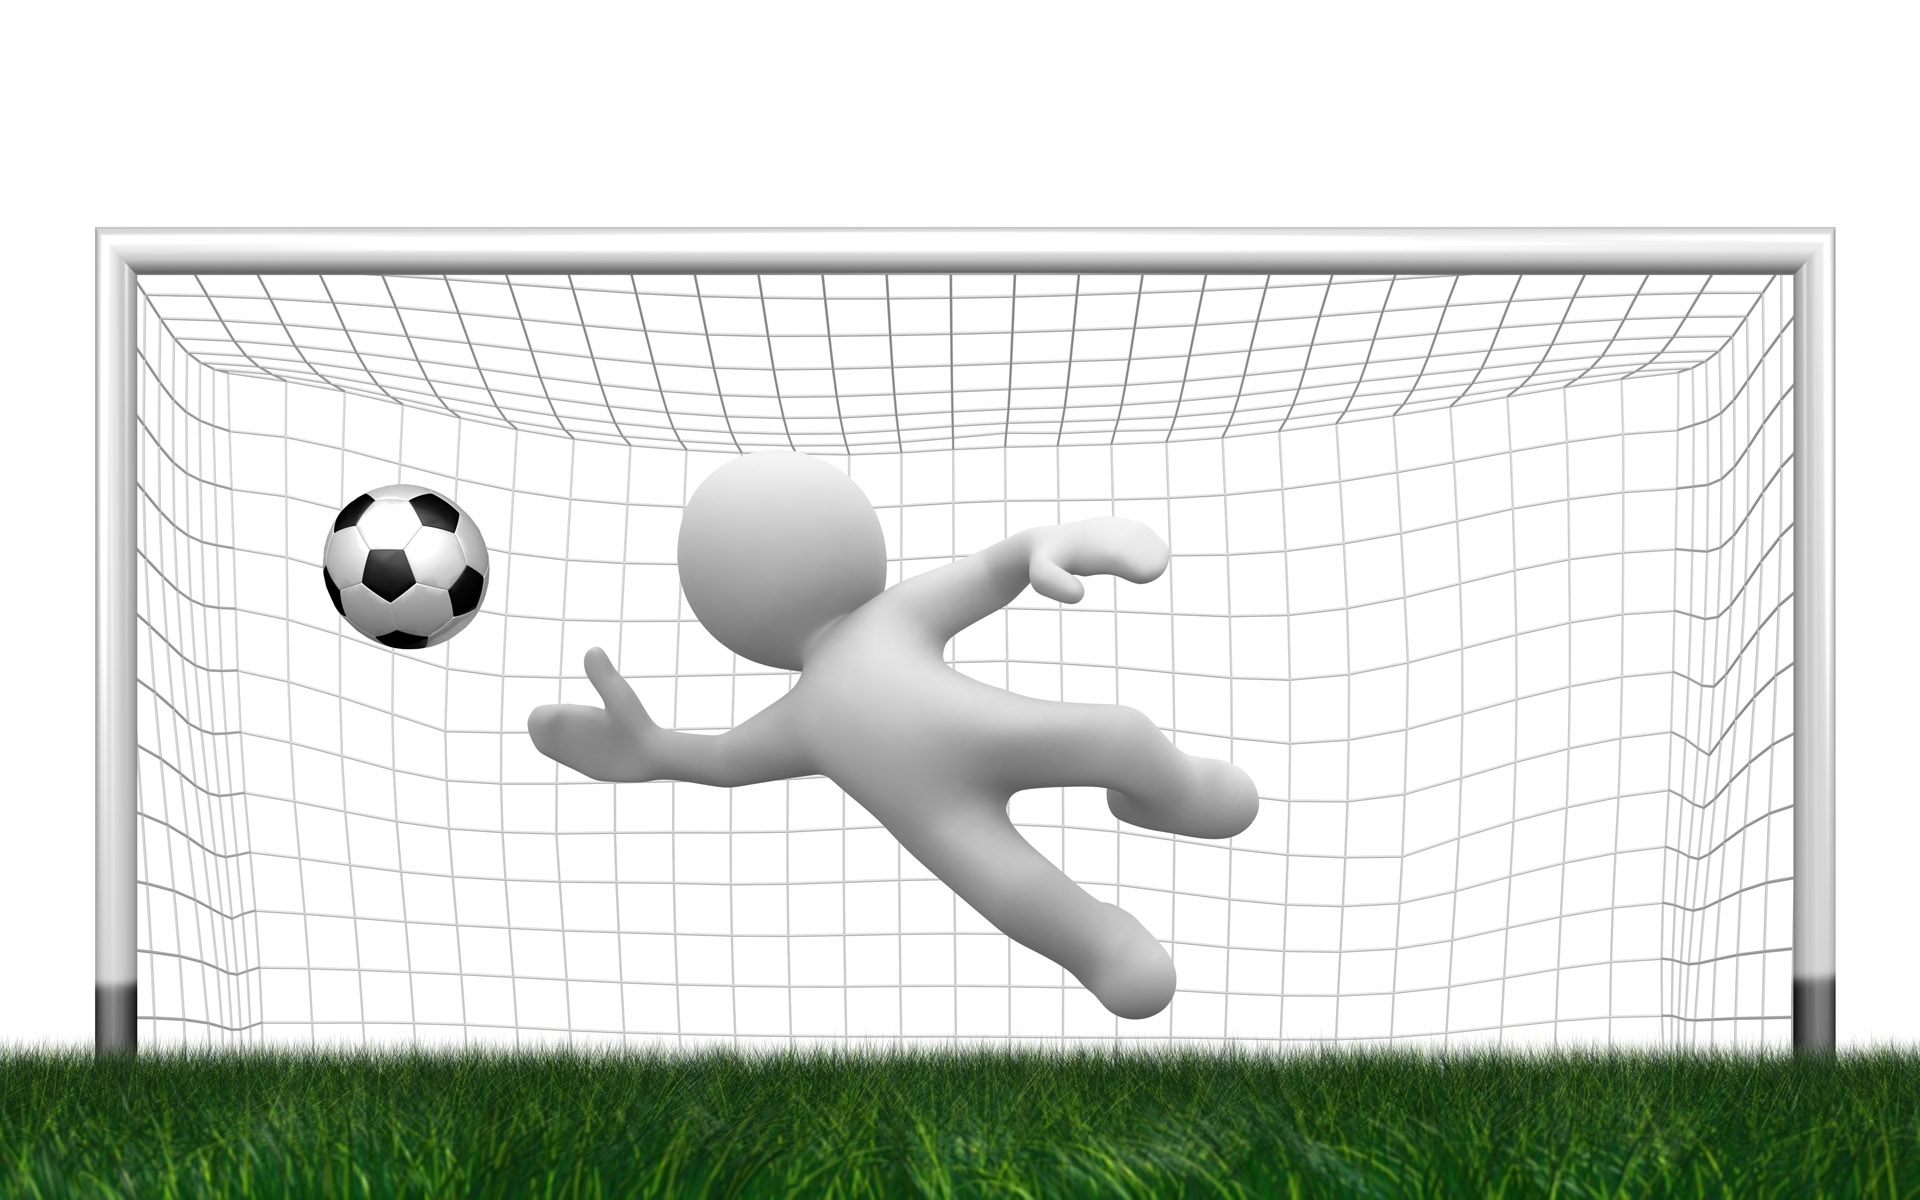 Free Soccer Goal Images, Download Free Clip Art, Free Clip.